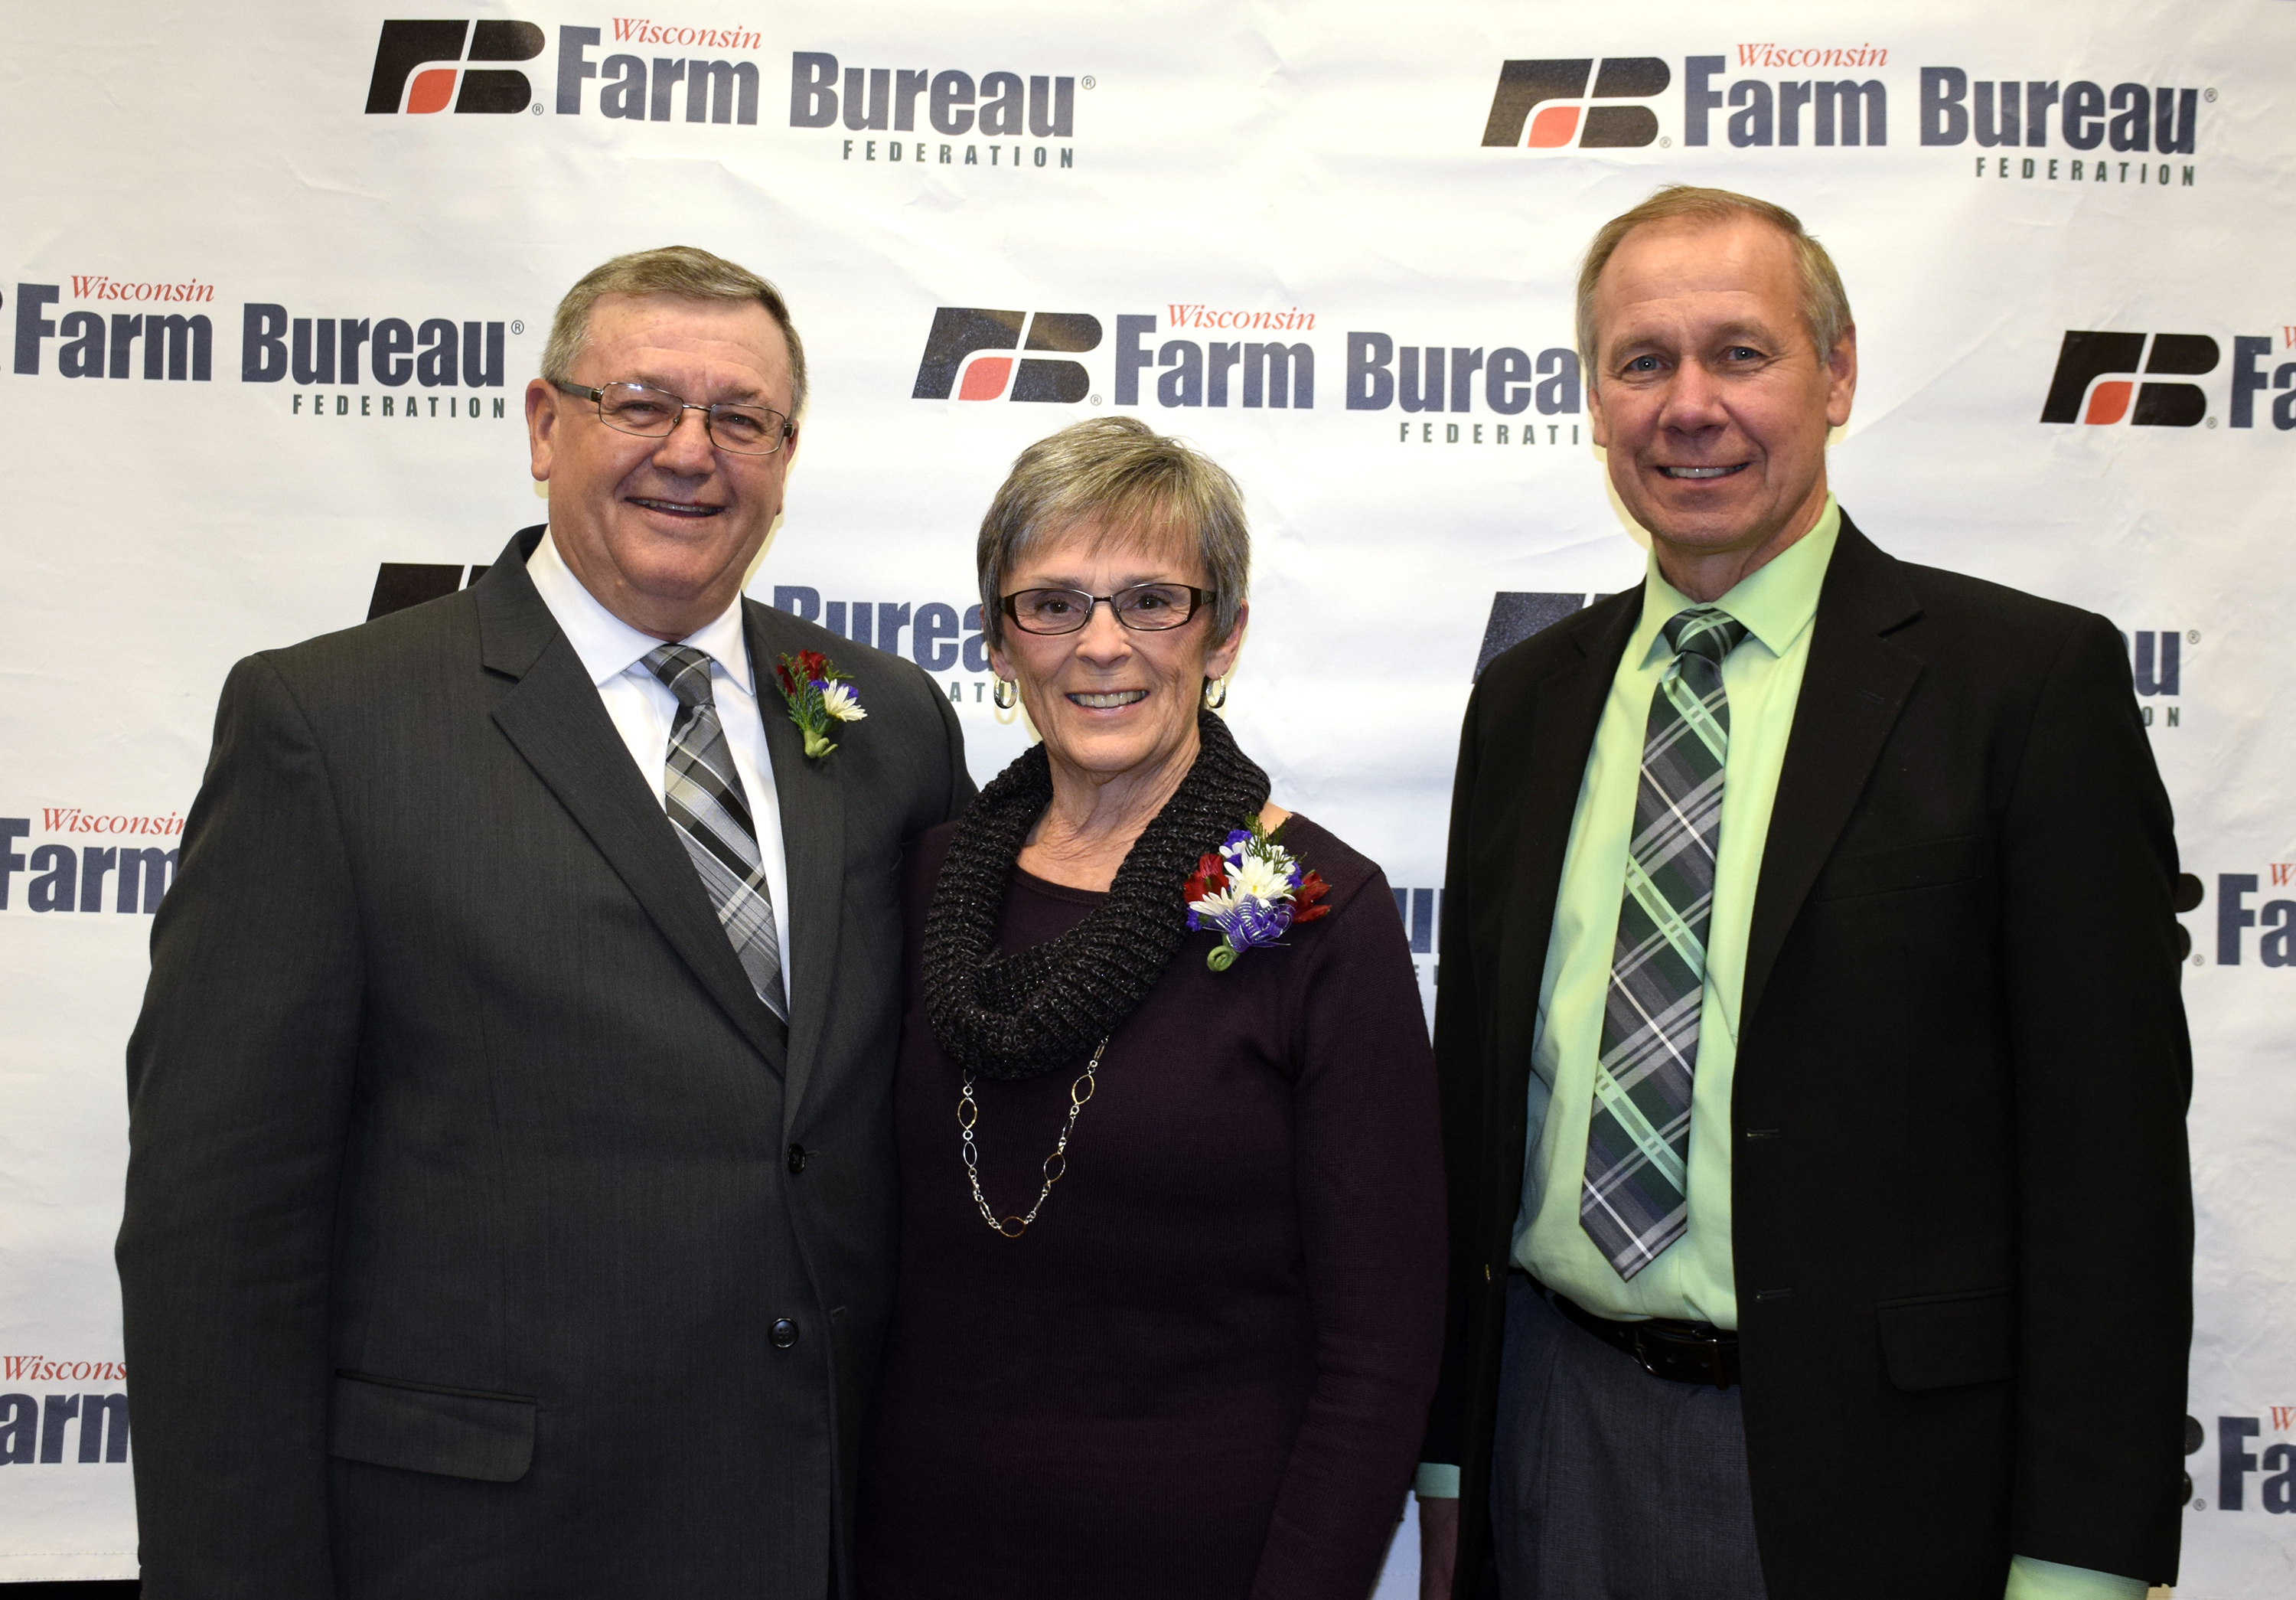 Bill Bruins Receives 'Distinguished Service to Wisconsin Agriculture' Award